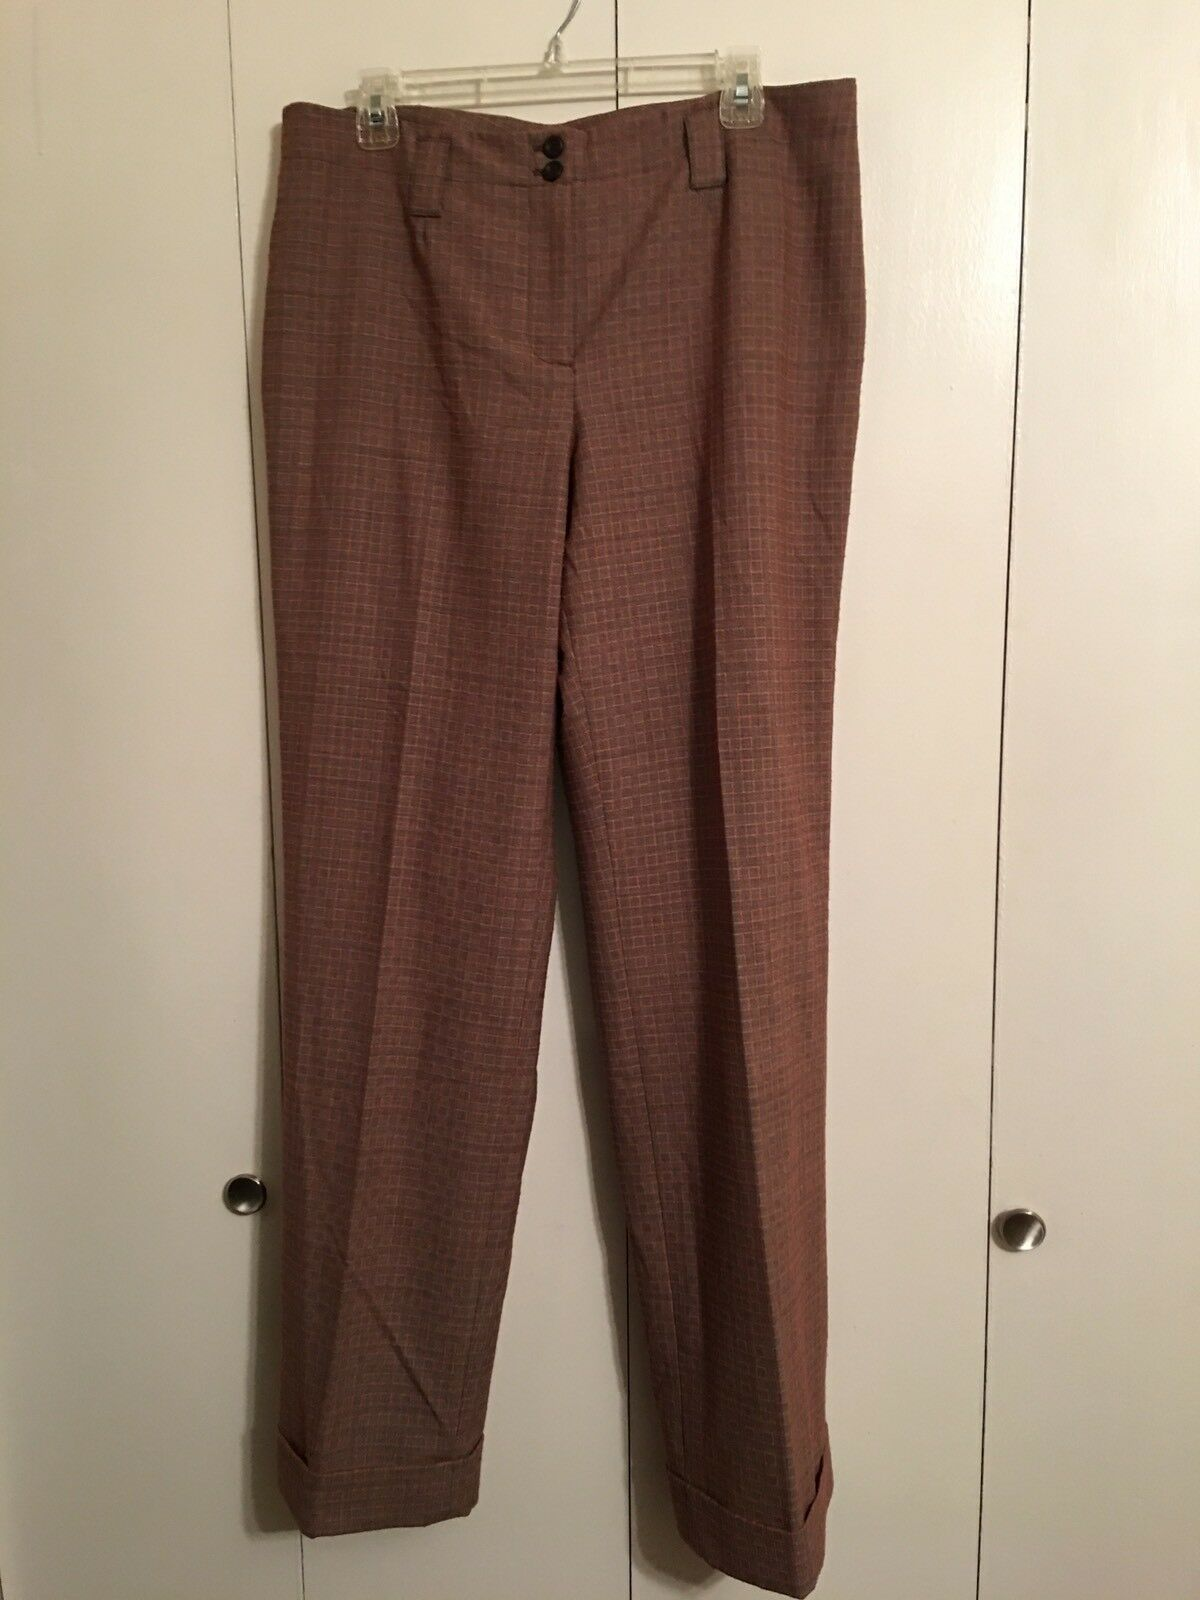 NWT Etcetera Gingeroot braun  Orange Polyester Blend Cuffed Pant 14